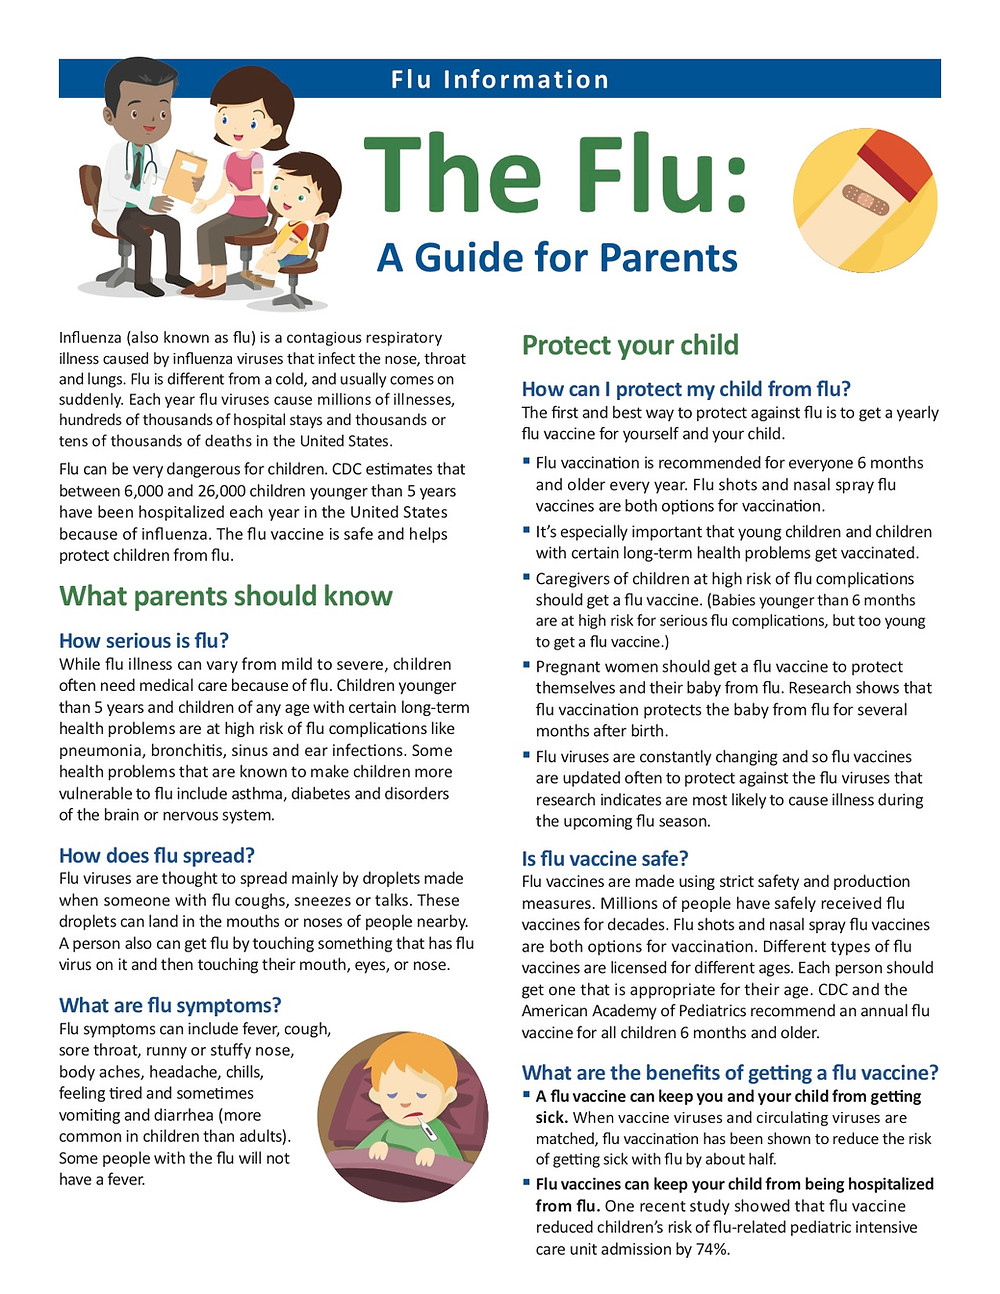 Flu information page 1 in English